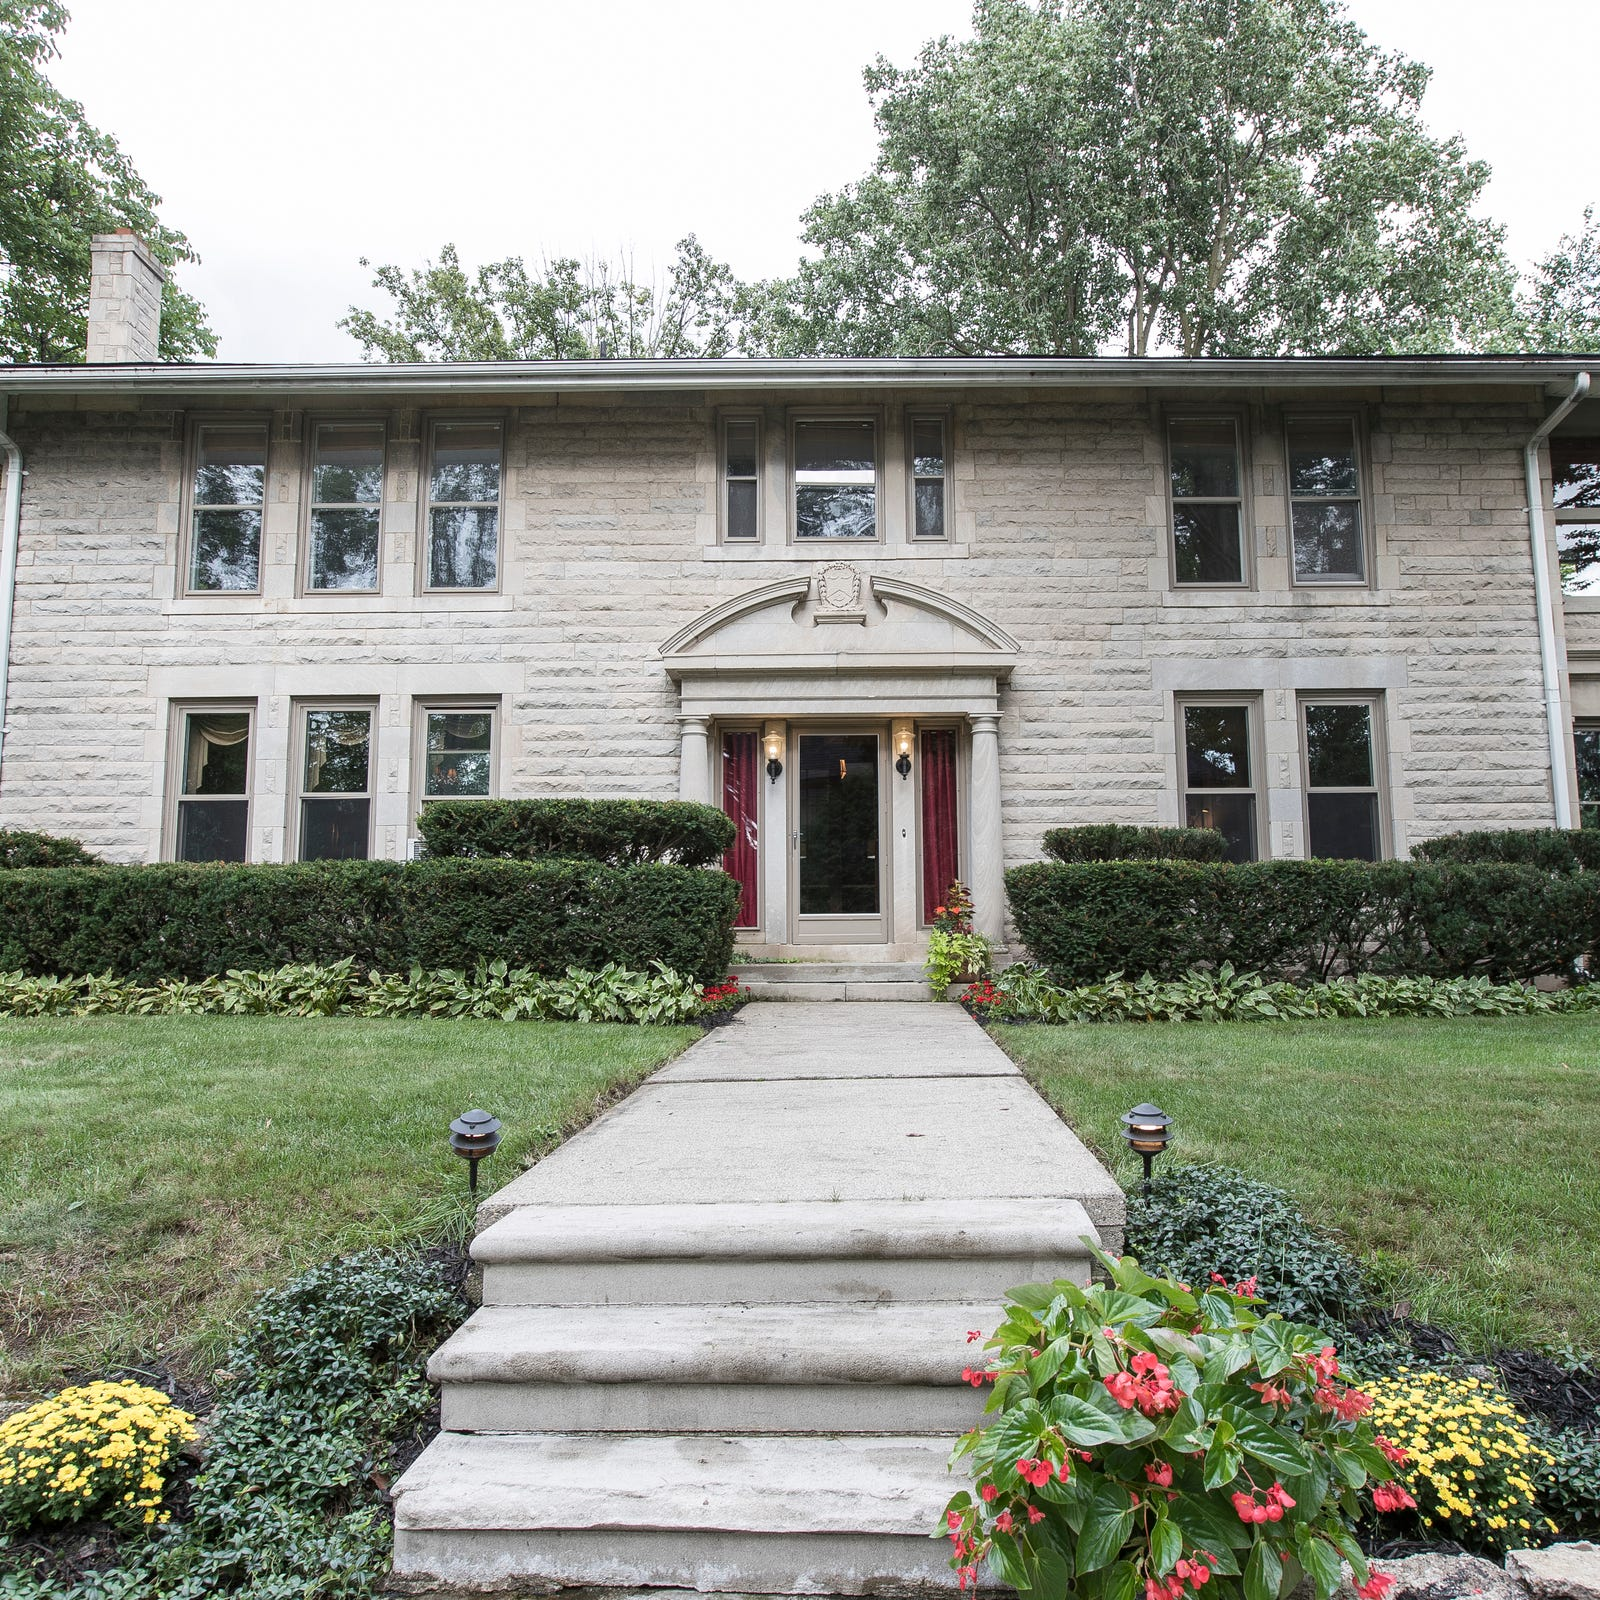 Surrounded by wannabes, this vintage limestone house in Royal Oak shines